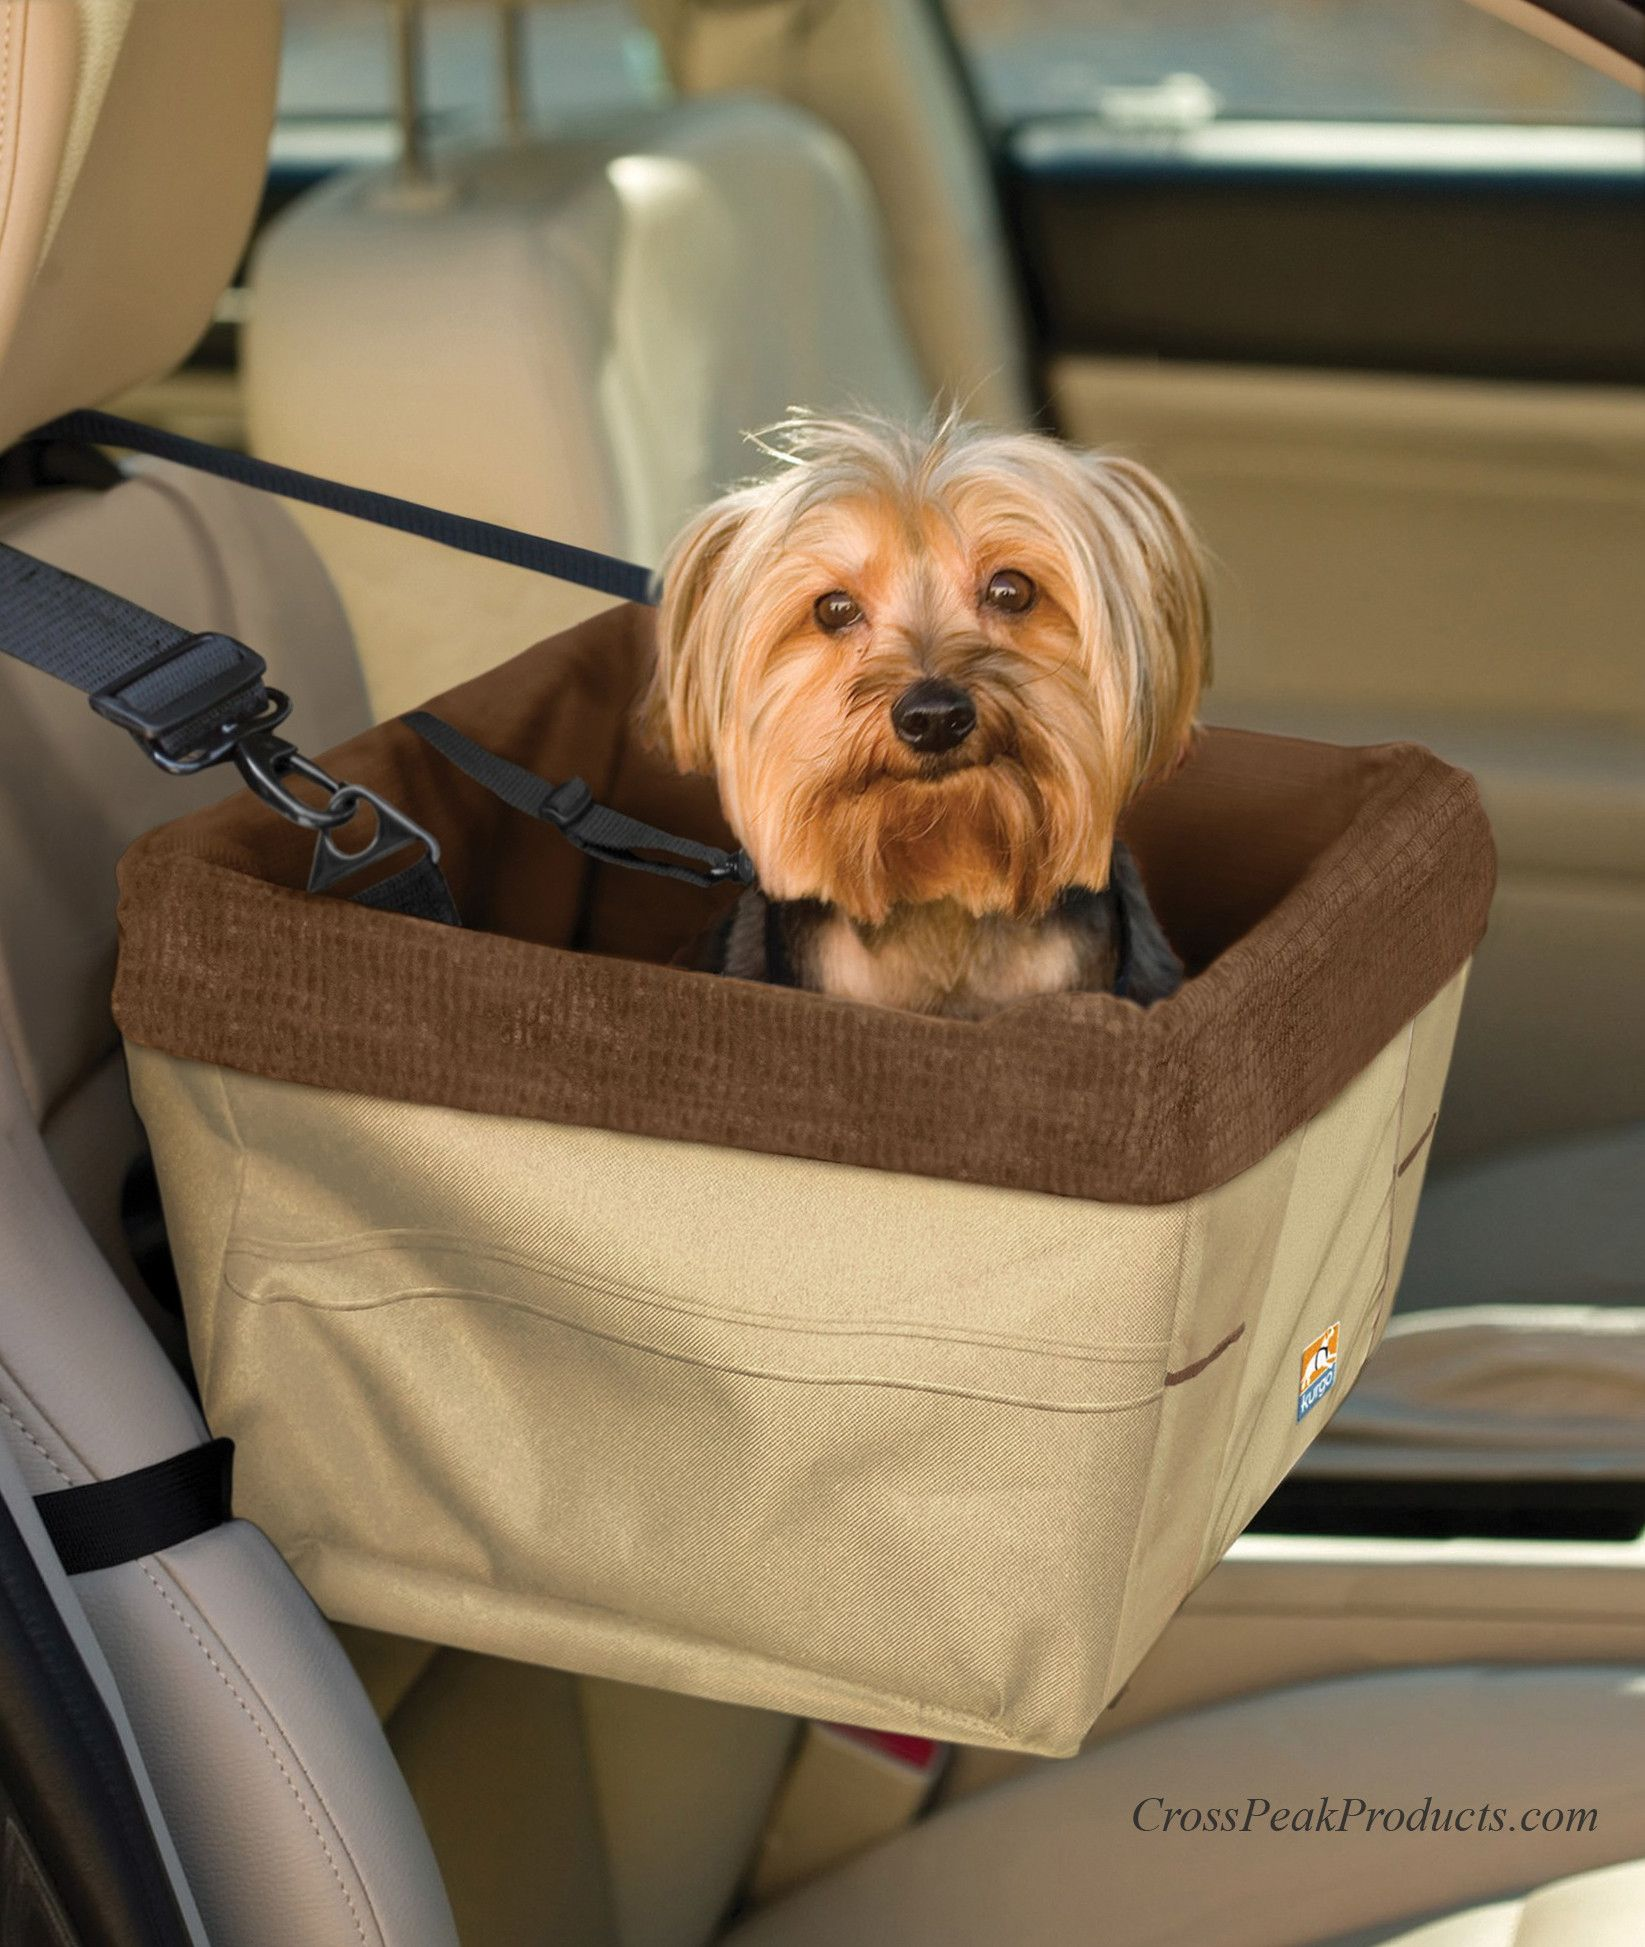 Best 25 small dog car seat ideas on pinterest dog car seats puppy car seat and dog car booster seat